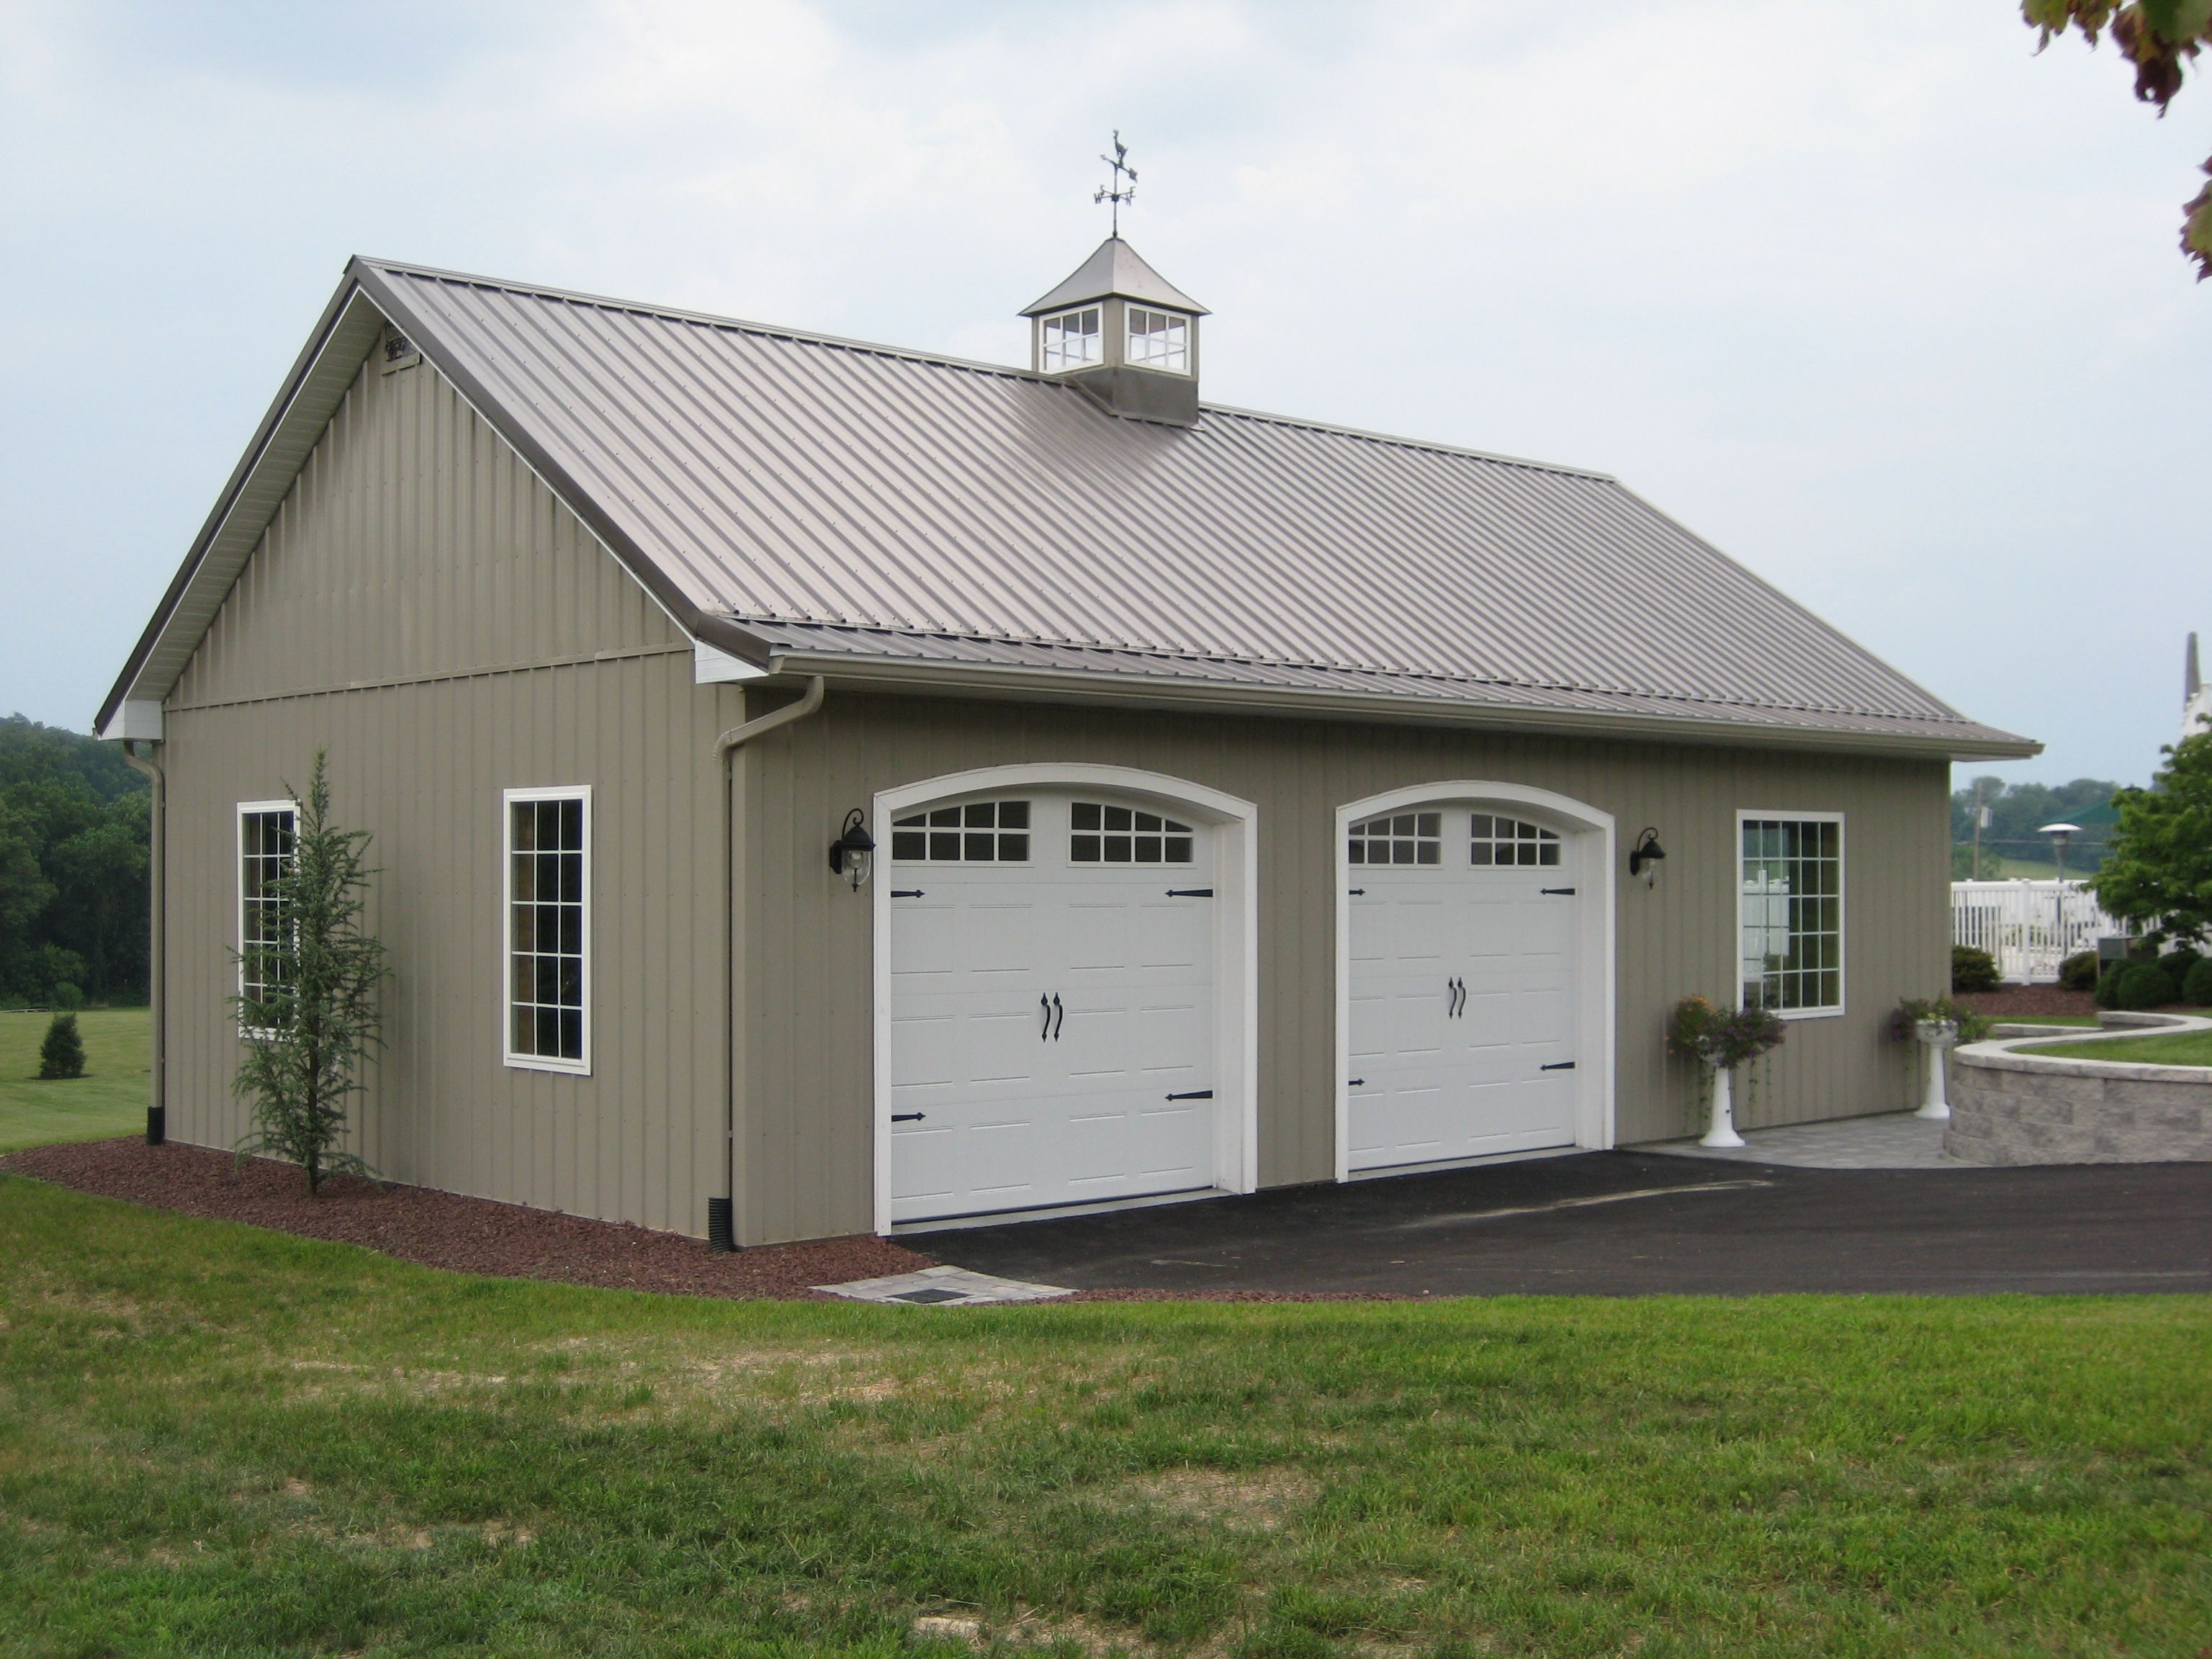 Best 25 pole barn garage ideas on pinterest pole barns for Garage building ideas